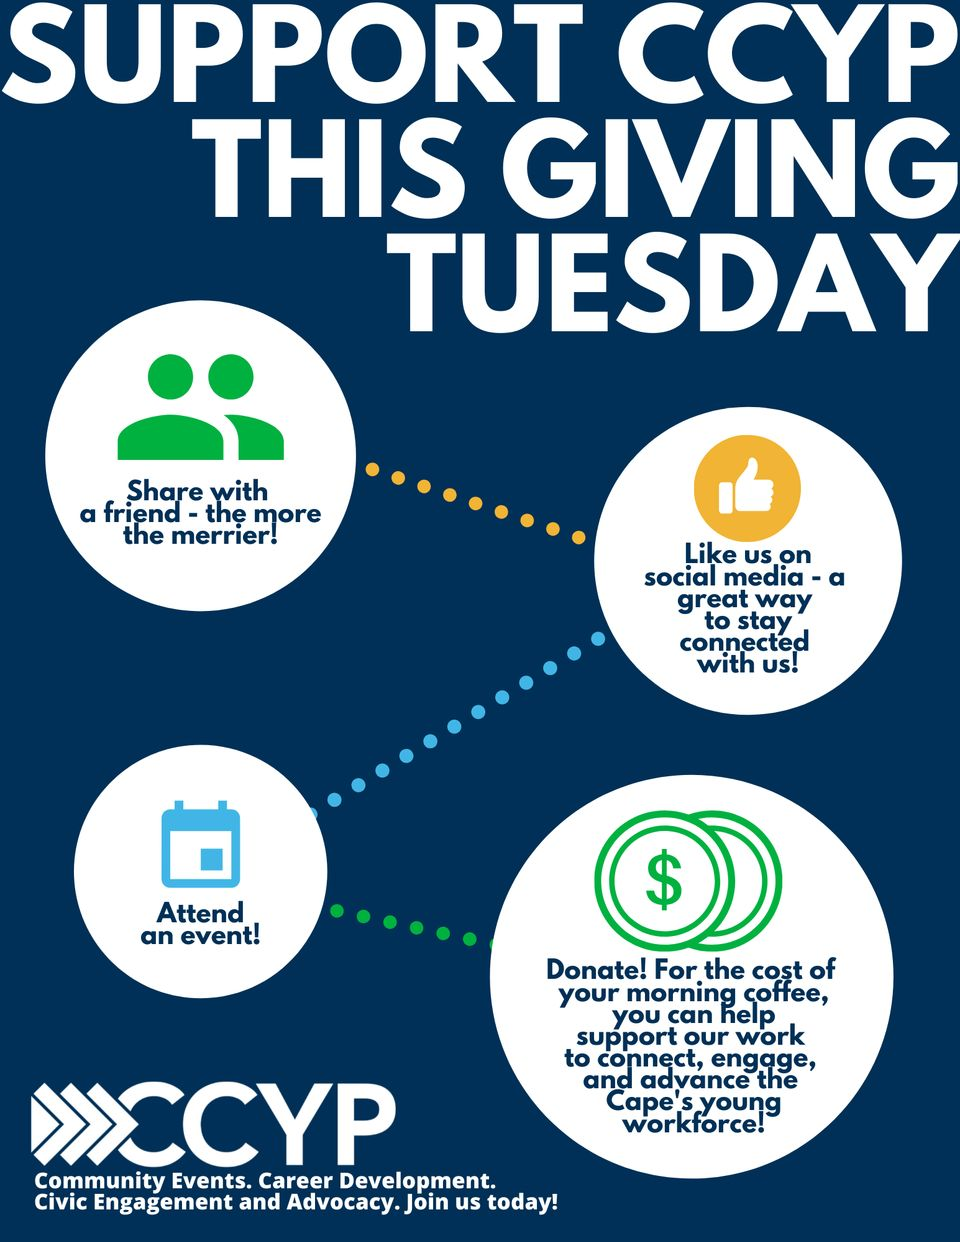 Support Ccypthis Giving Tuesday